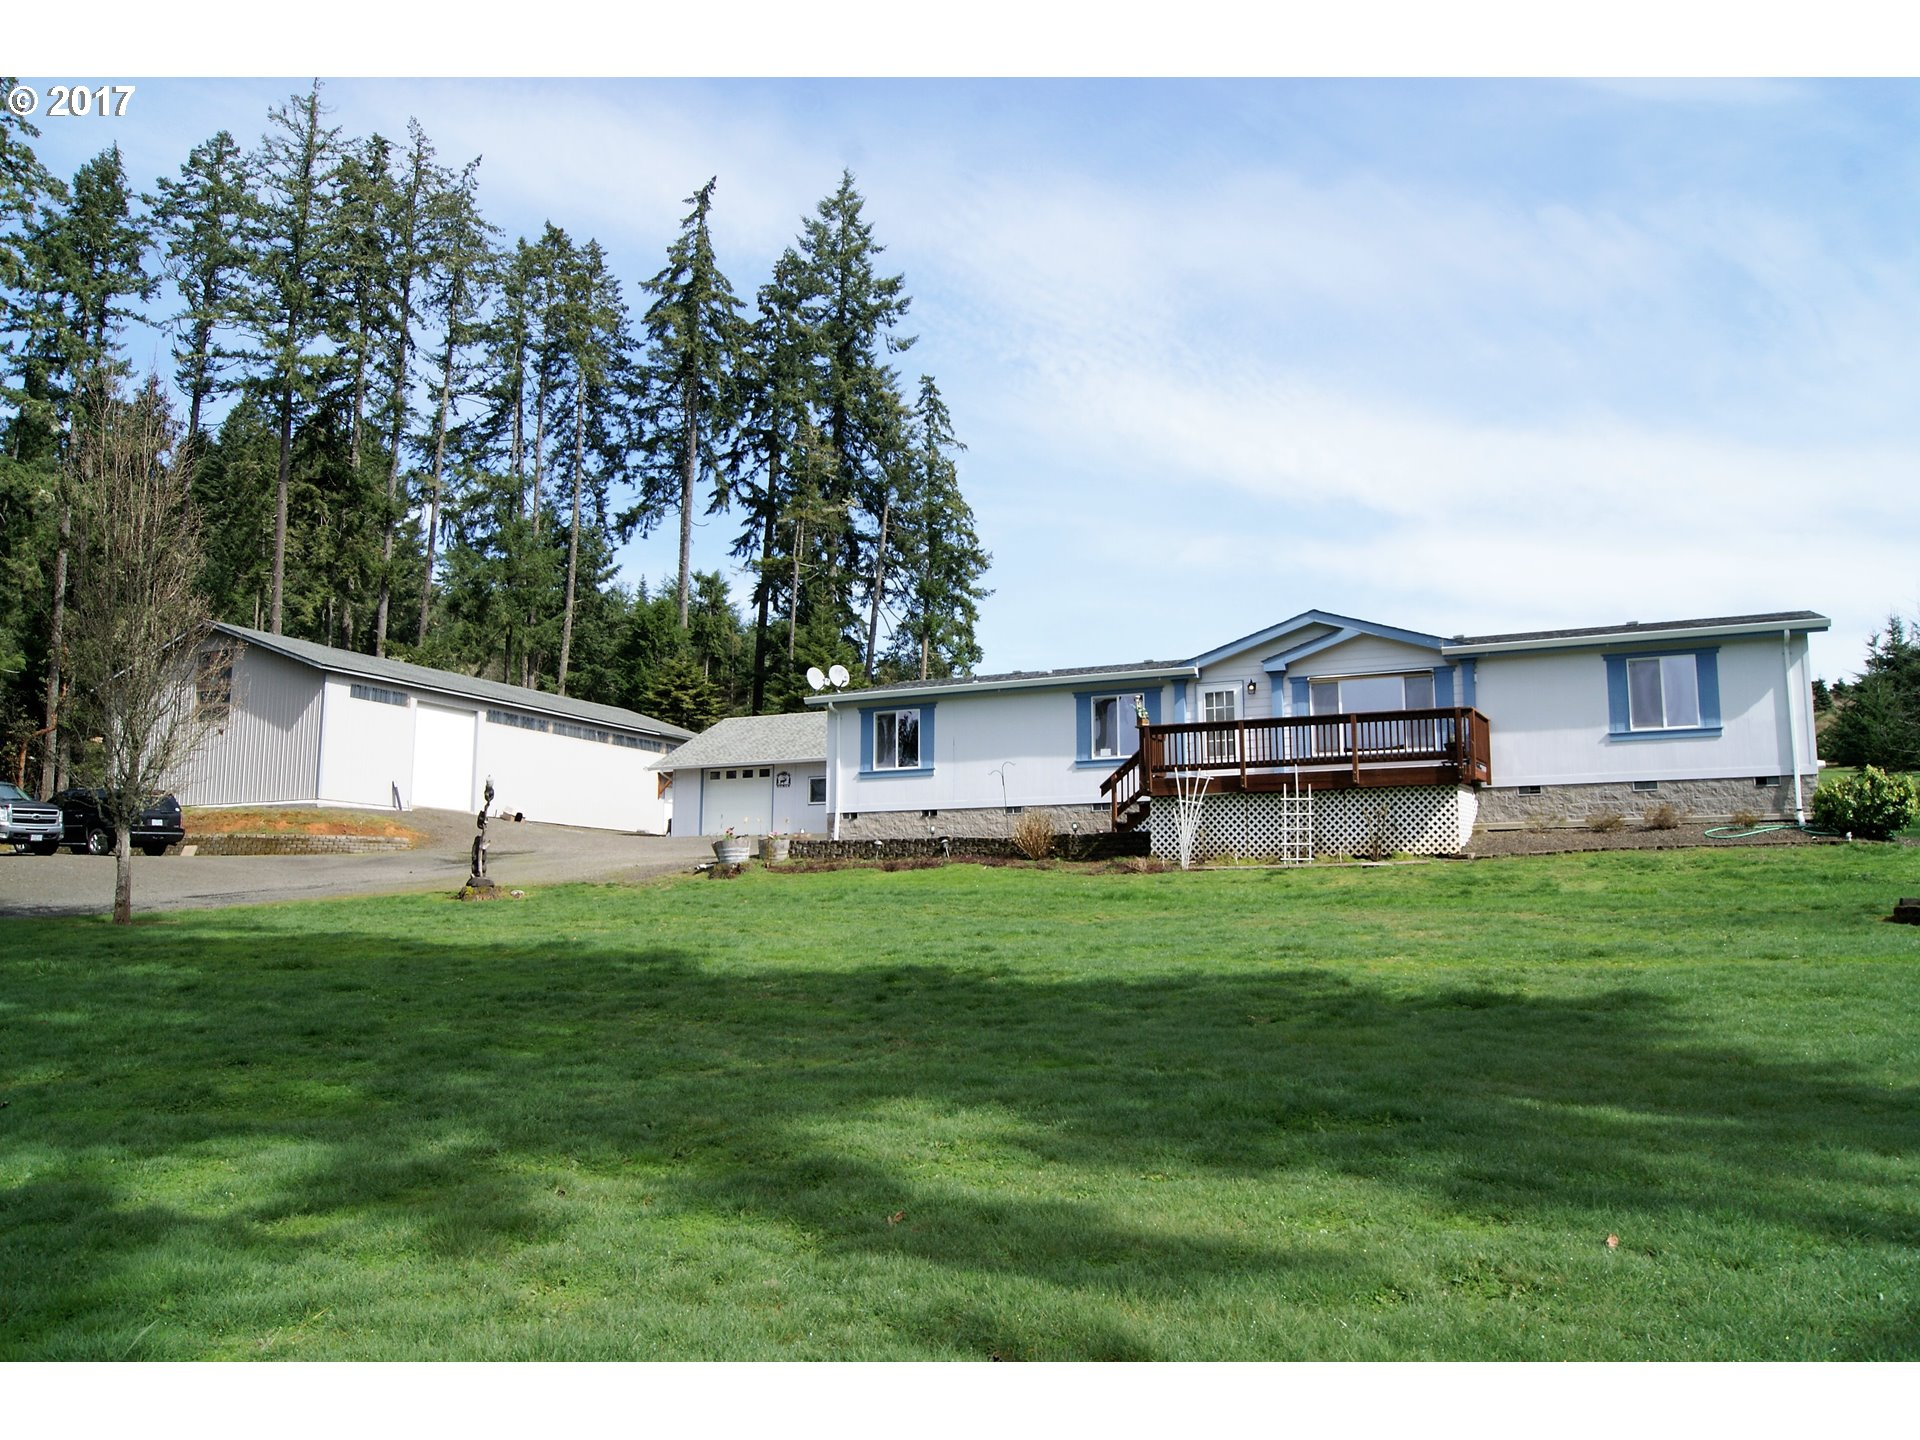 25501 LAWRENCE RD, Junction City, OR 97448